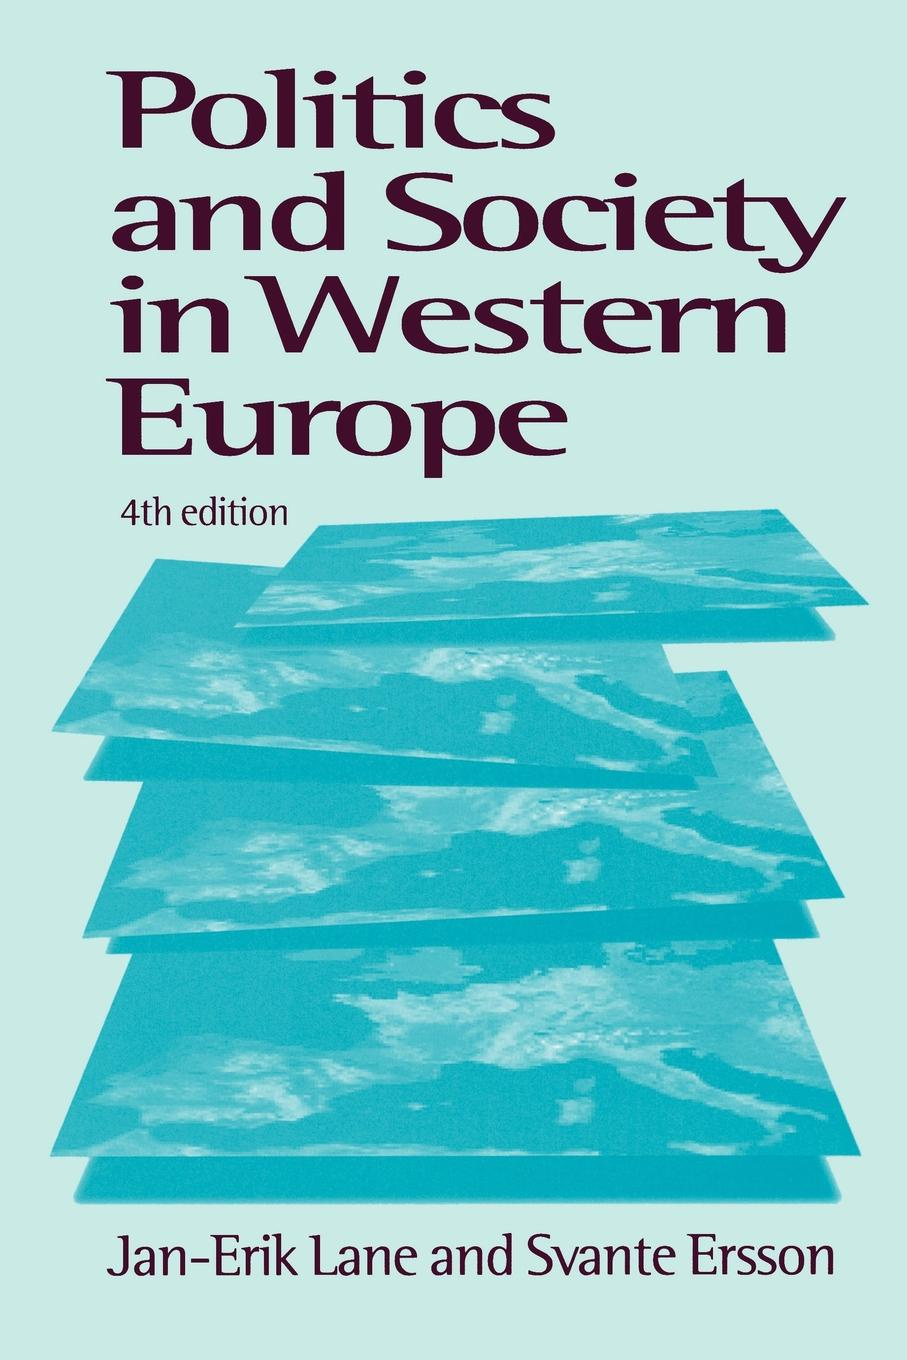 Politics and Society in Western Europe shoes 8 5 in europe